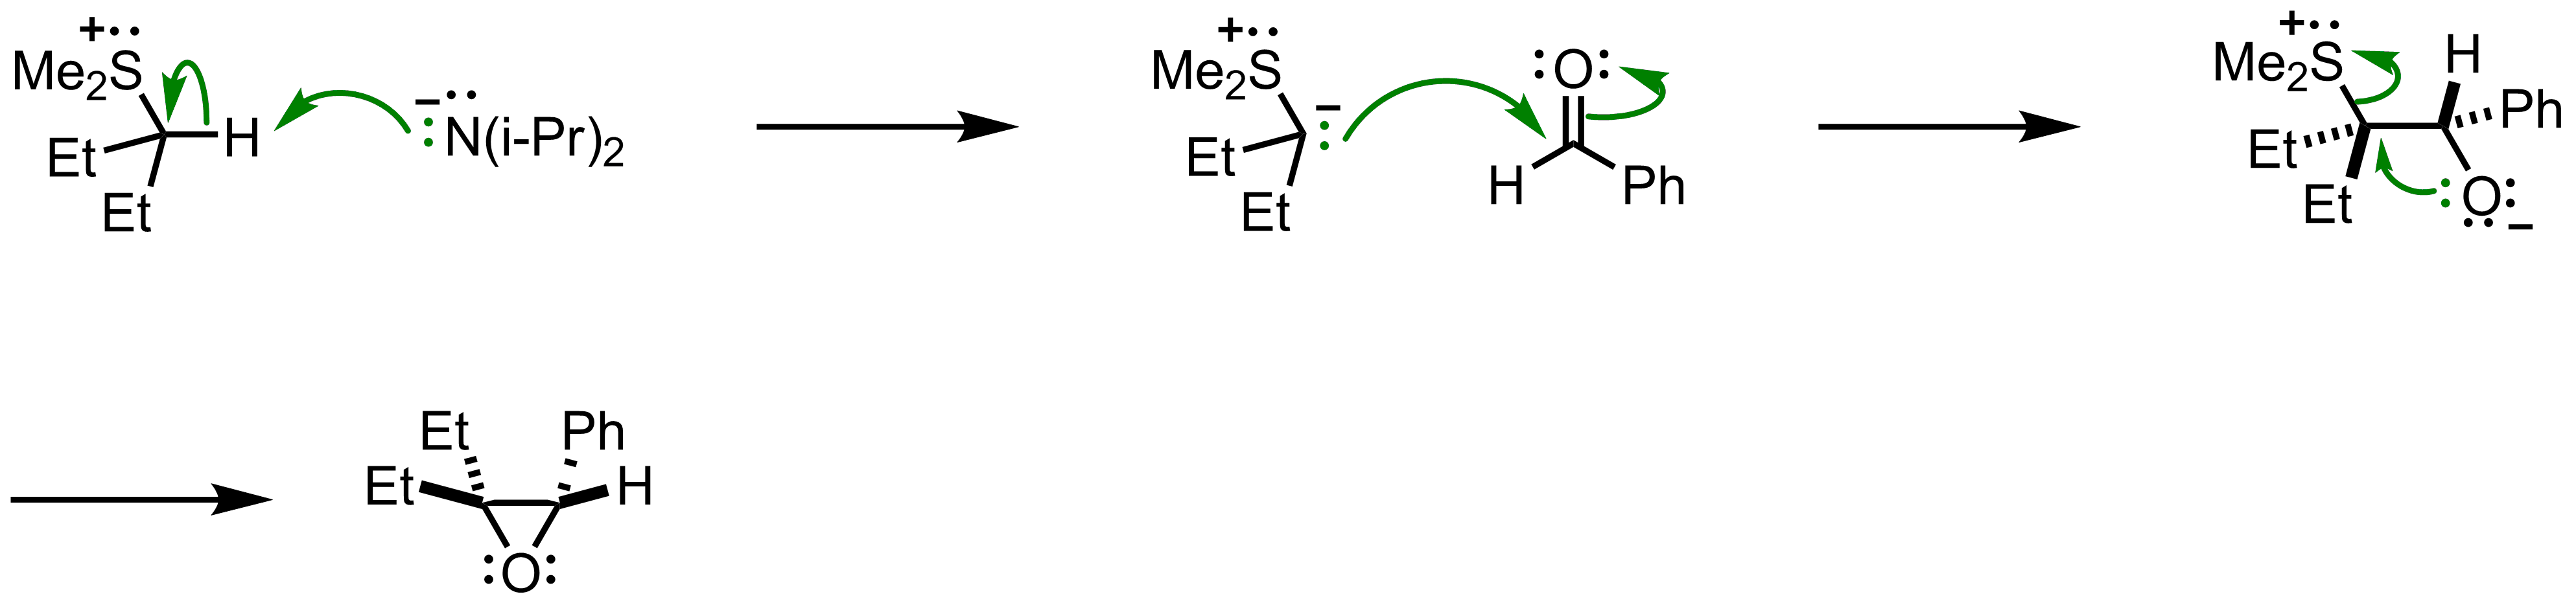 Mechanism of the Johnson-Corey-Chaykovsky Reaction